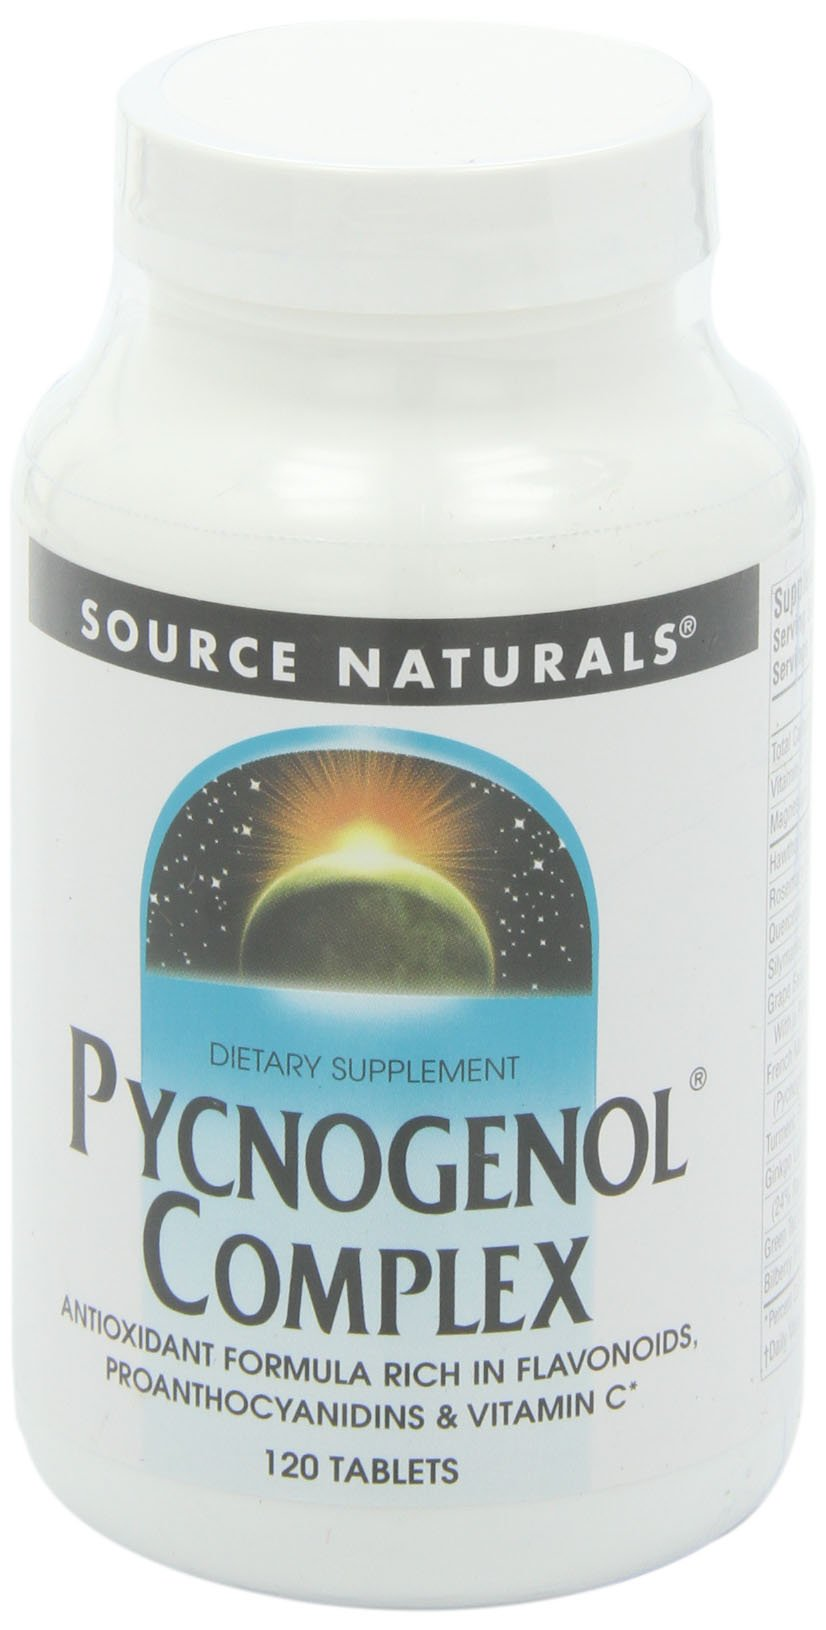 Source Naturals Pycnogenol Complex Antioxidant Formula Rich in Flavonoids, Proanthocyanidins & Vitamin C - 120 Tablets by Source Naturals